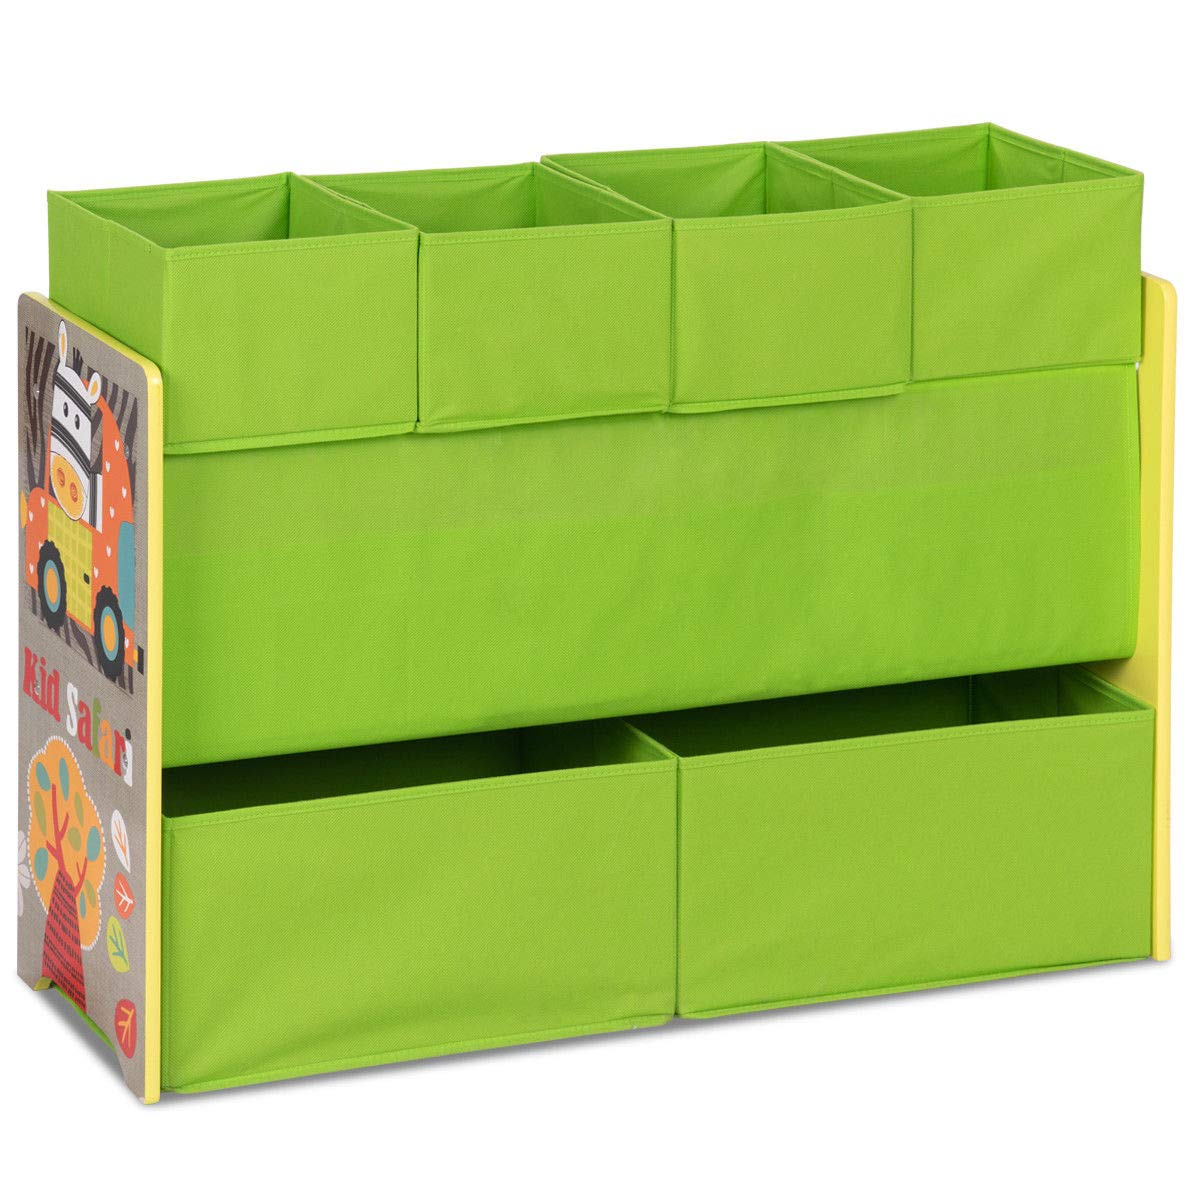 Green Kids Toys Organizer Boxes Storage Rack w/Removable Bins with Ebook